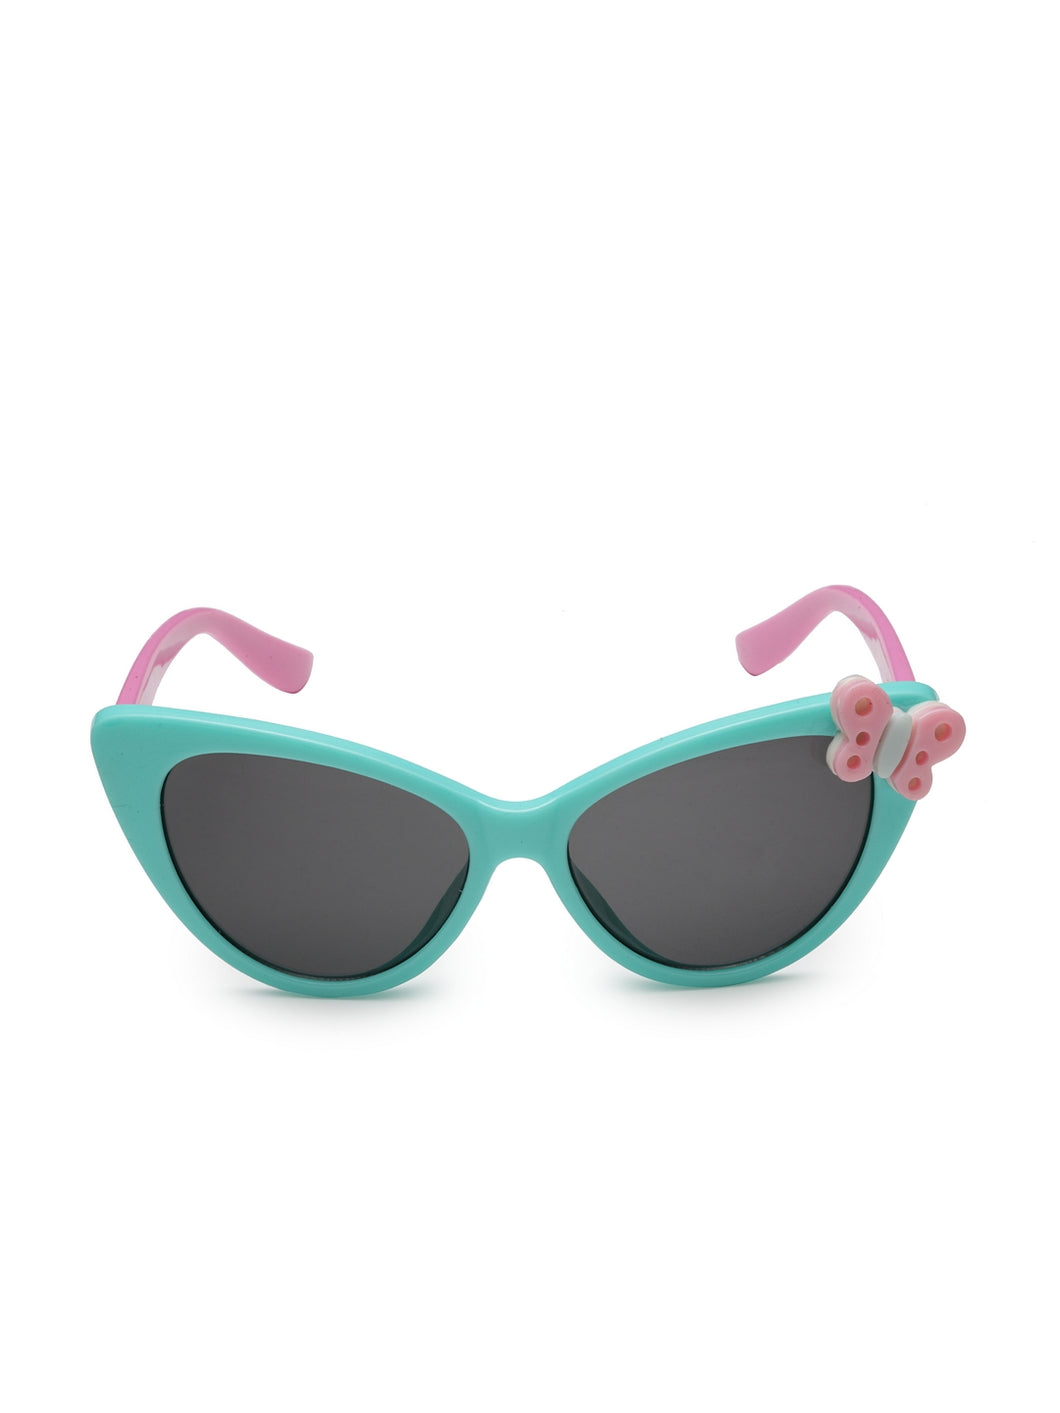 Stol'n Kids Yellow and Blue Bow Applique Rectangular Sunglasses:Yellow and Blue Orange and Yellow